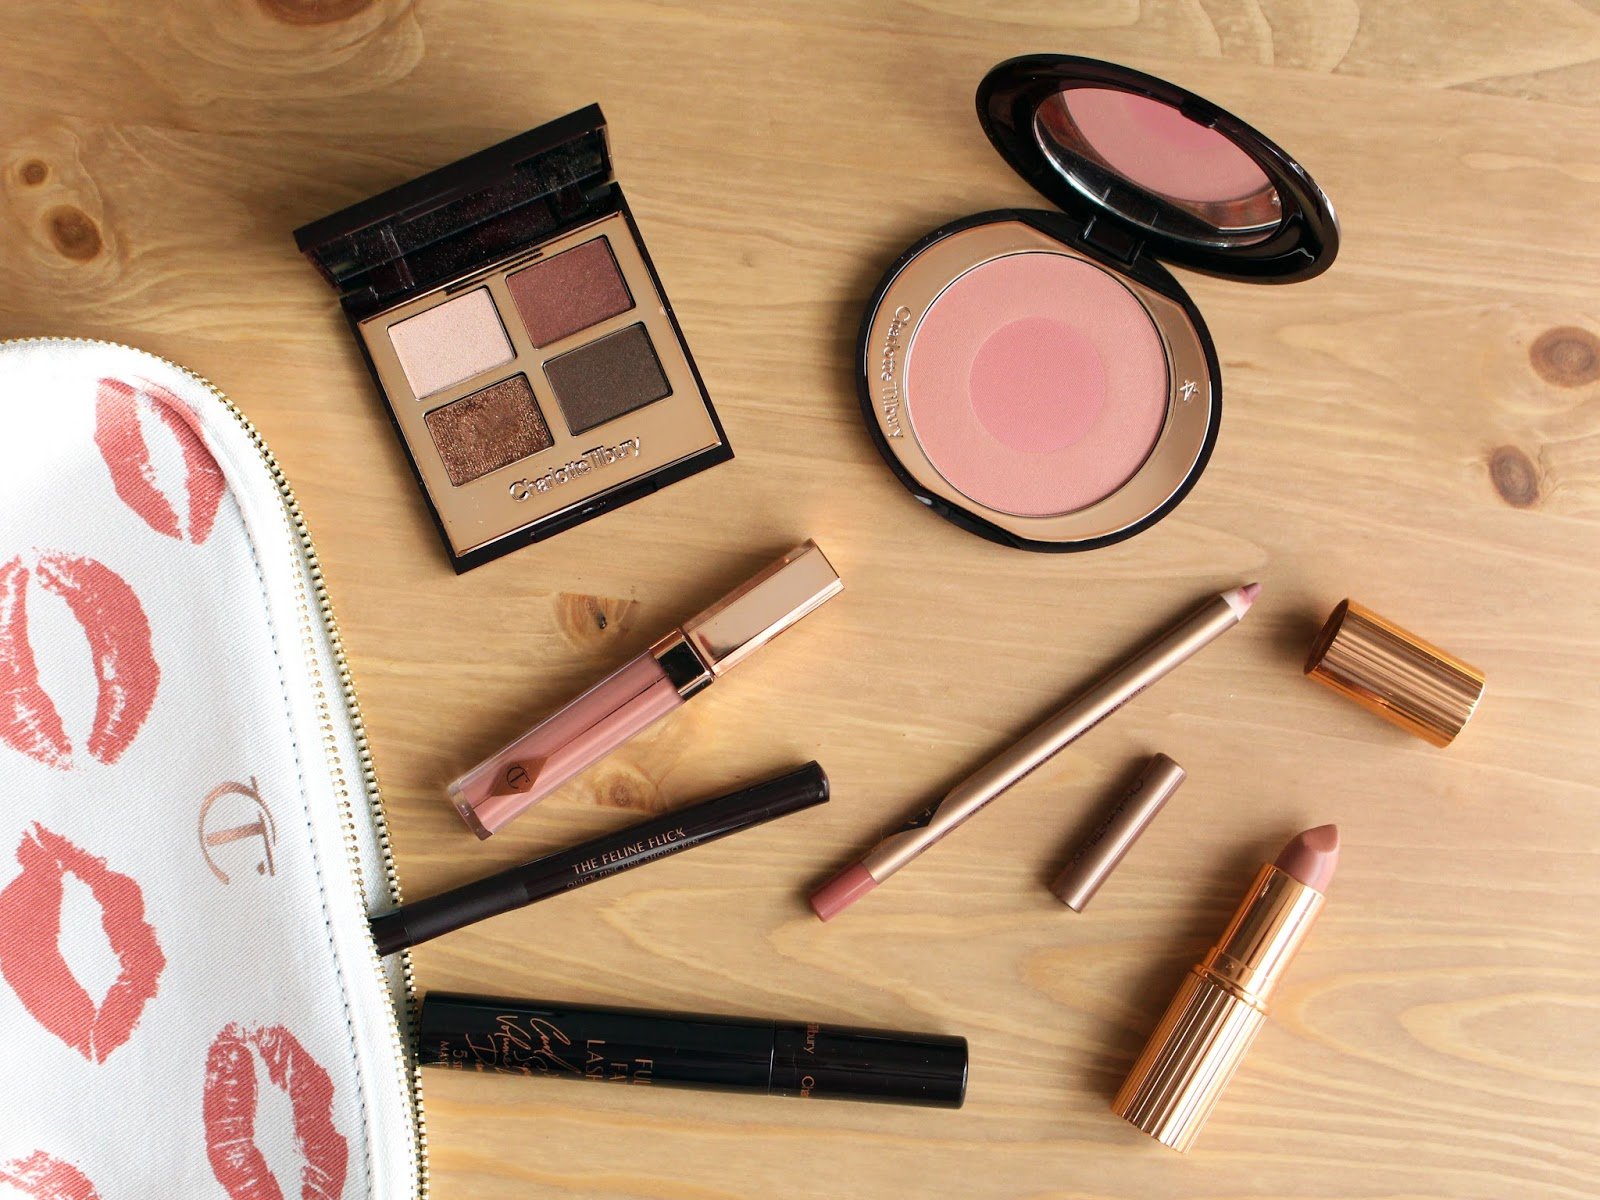 The Dolce Vita // Charlotte Tilbury First Impressions